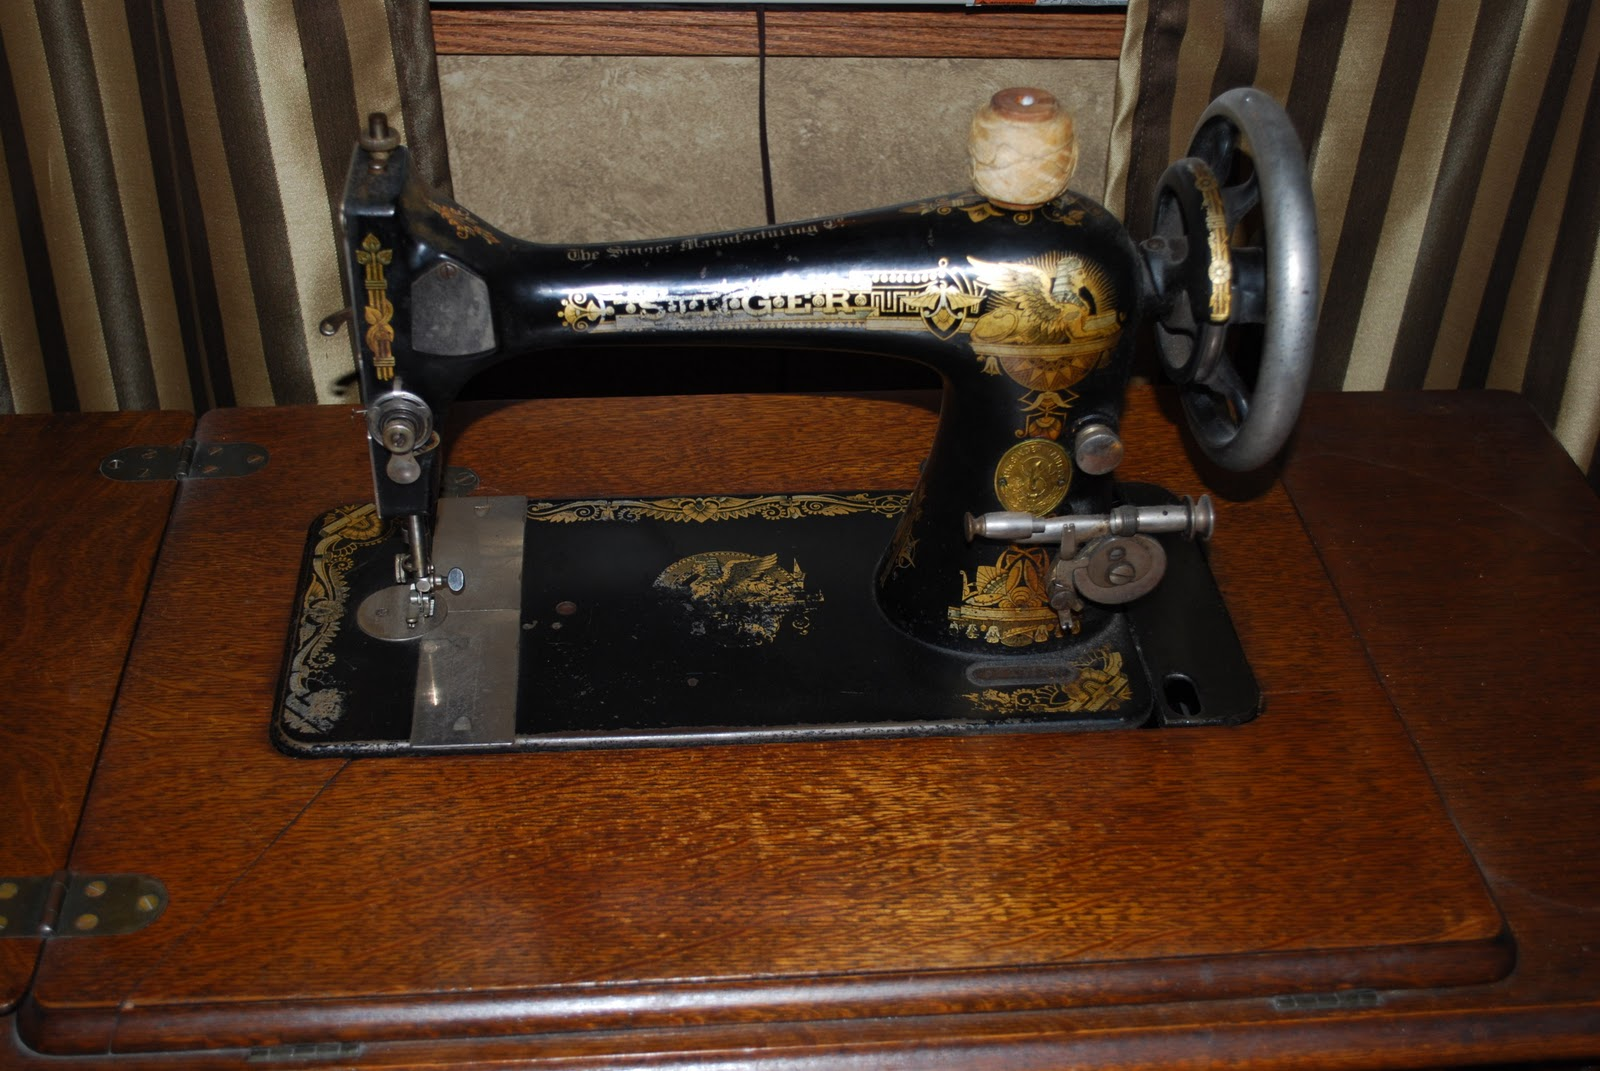 Image Result For How To Thread A Old Singer Sewing Machine With Pictures